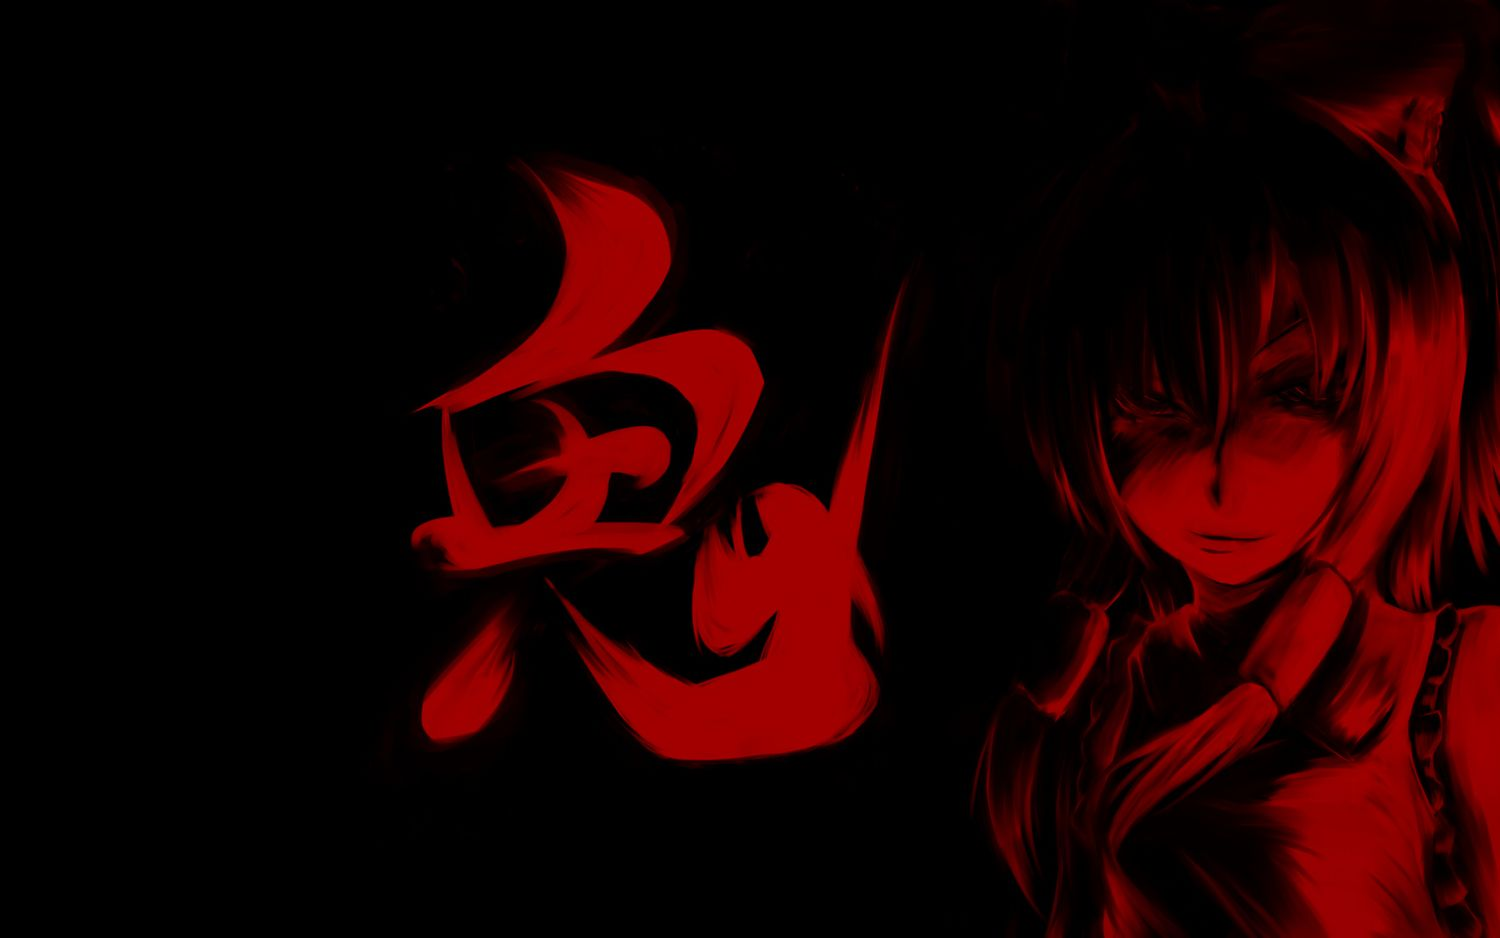 Dark Red Anime Wallpapers Top Free Dark Red Anime Backgrounds